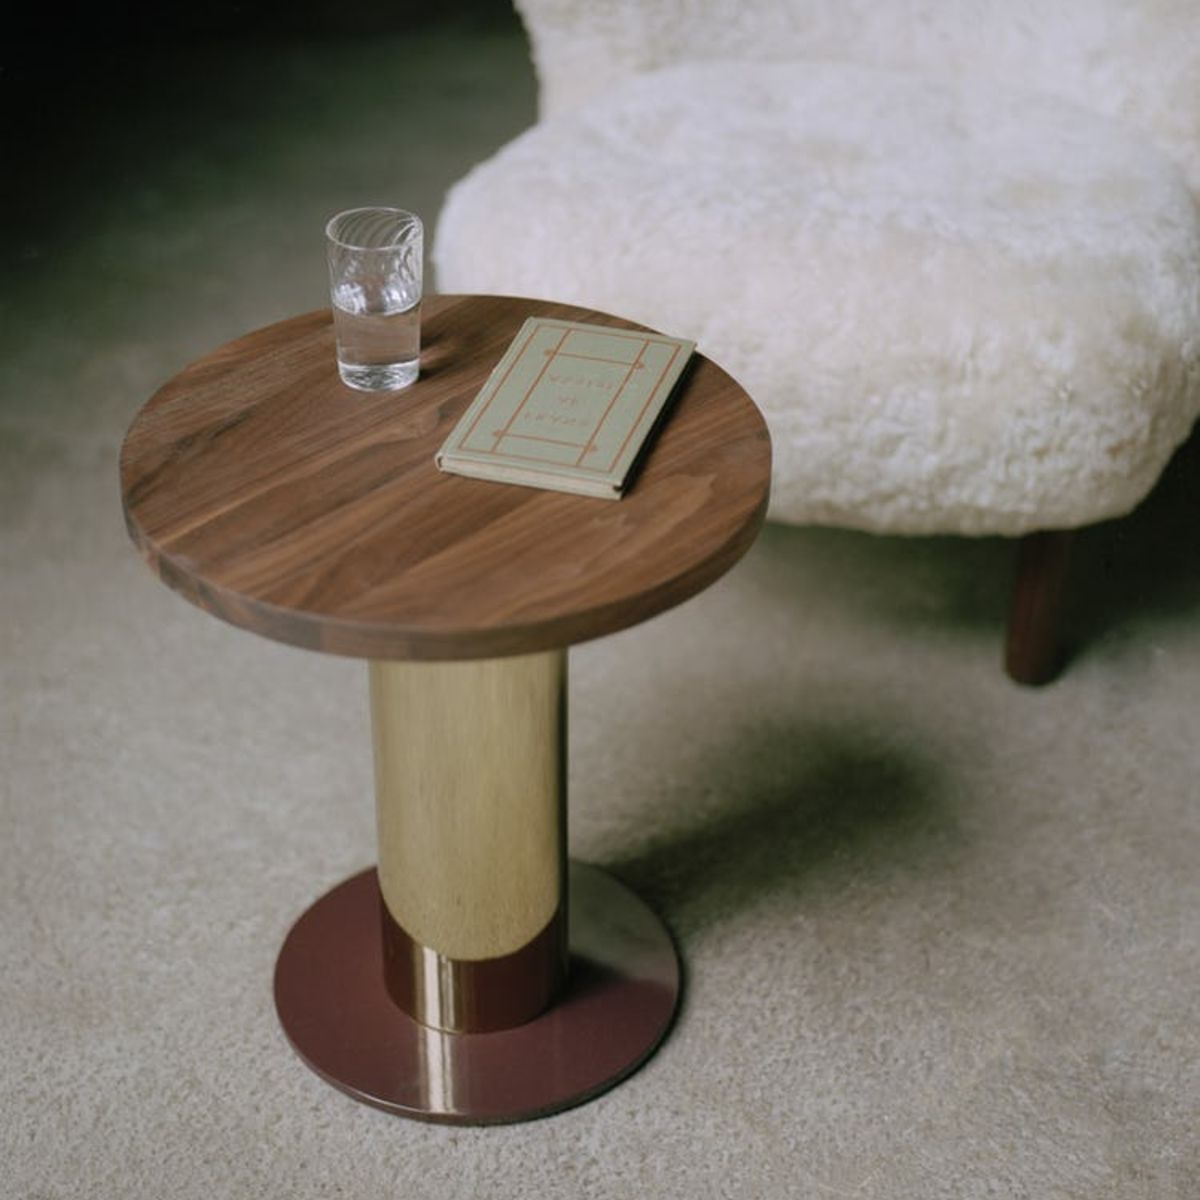 A photo of mezcla coffee table